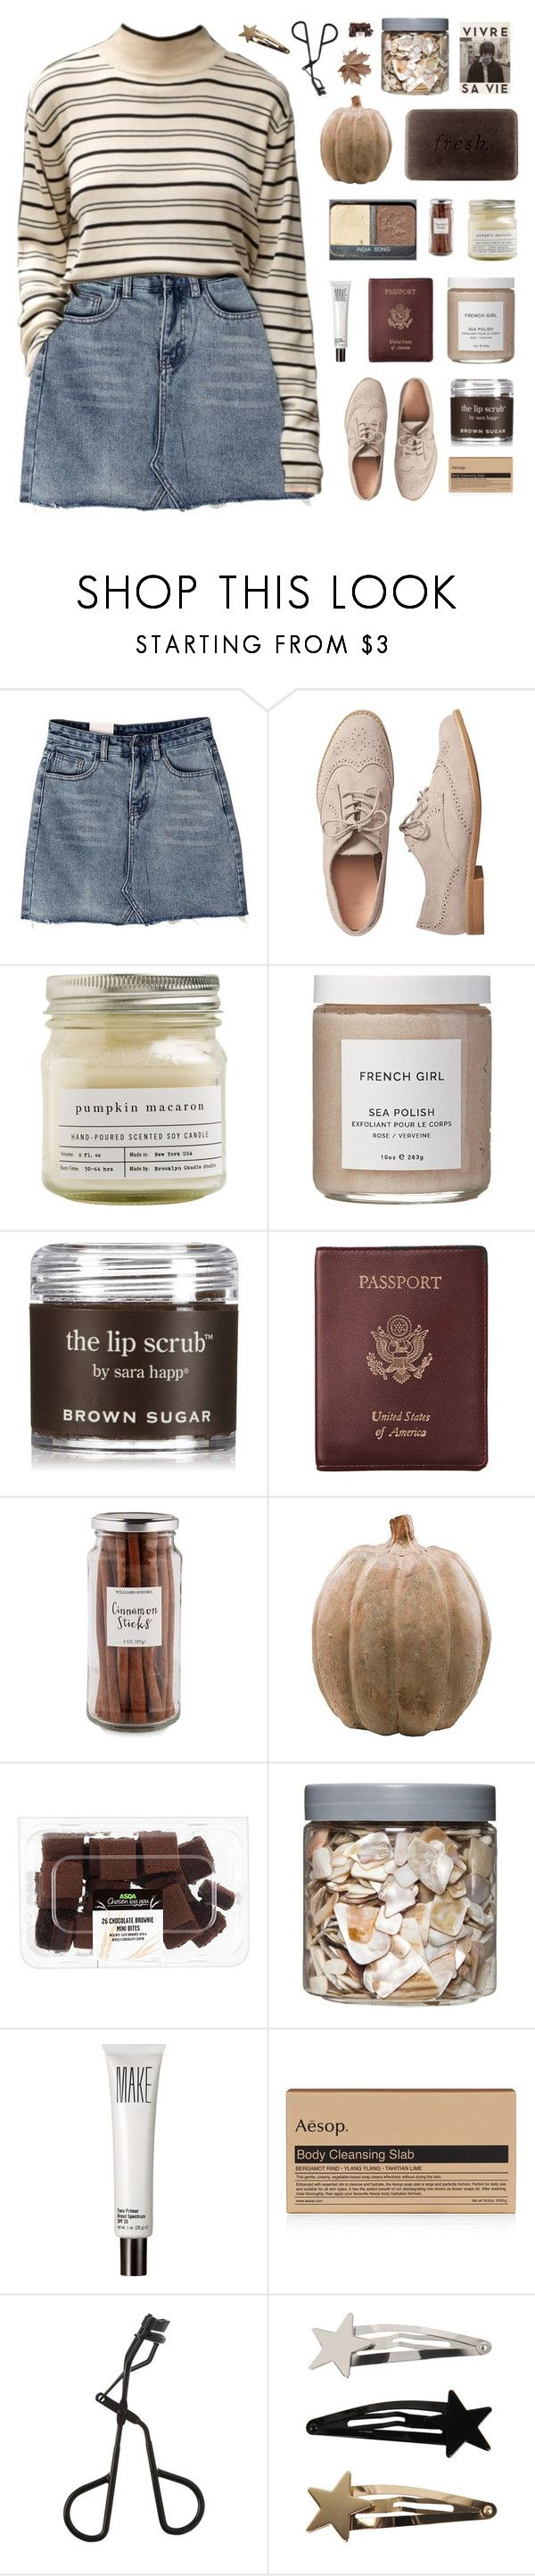 """「68.」"" by moonbeam-s ❤ liked on Polyvore featuring Gap, Brooklyn Candle Studio, French Girl, Sara Happ, Royce Leather, Williams-Sonoma, Smith & Hawken, Threshold, Make and Aesop"